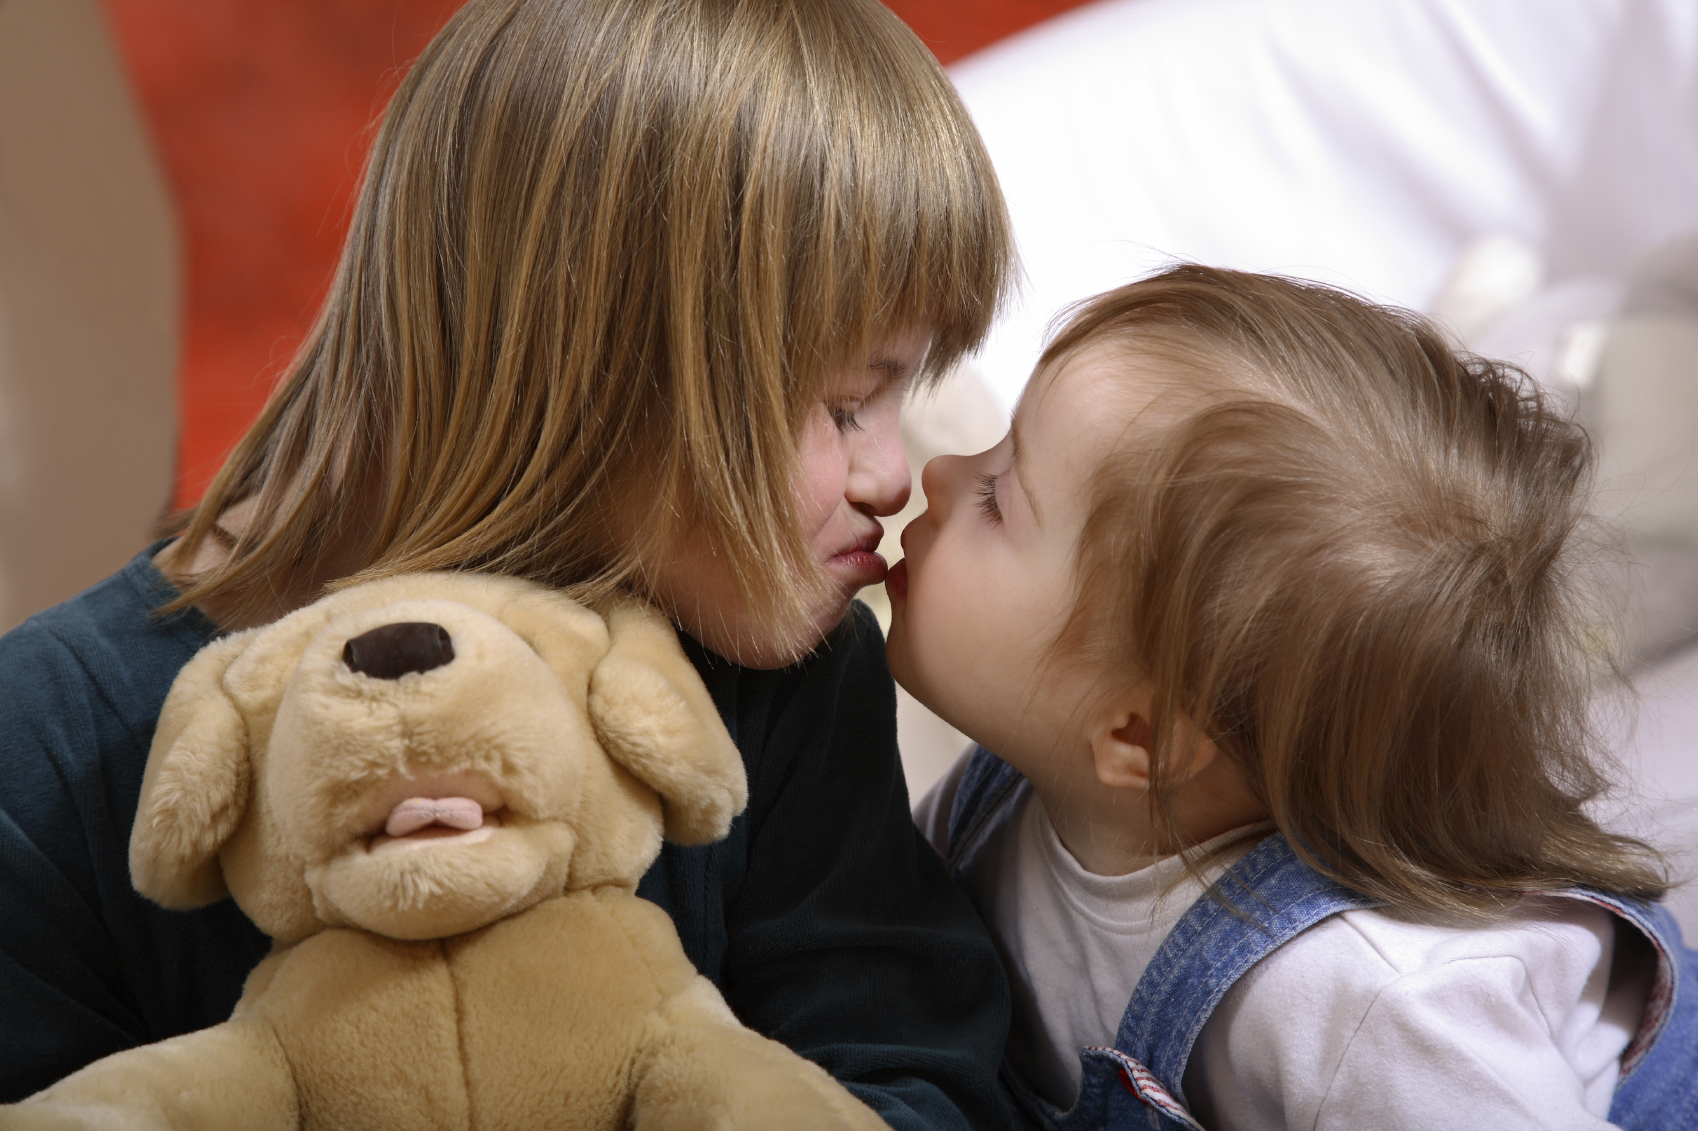 Two kids with down sydnrome kissing.